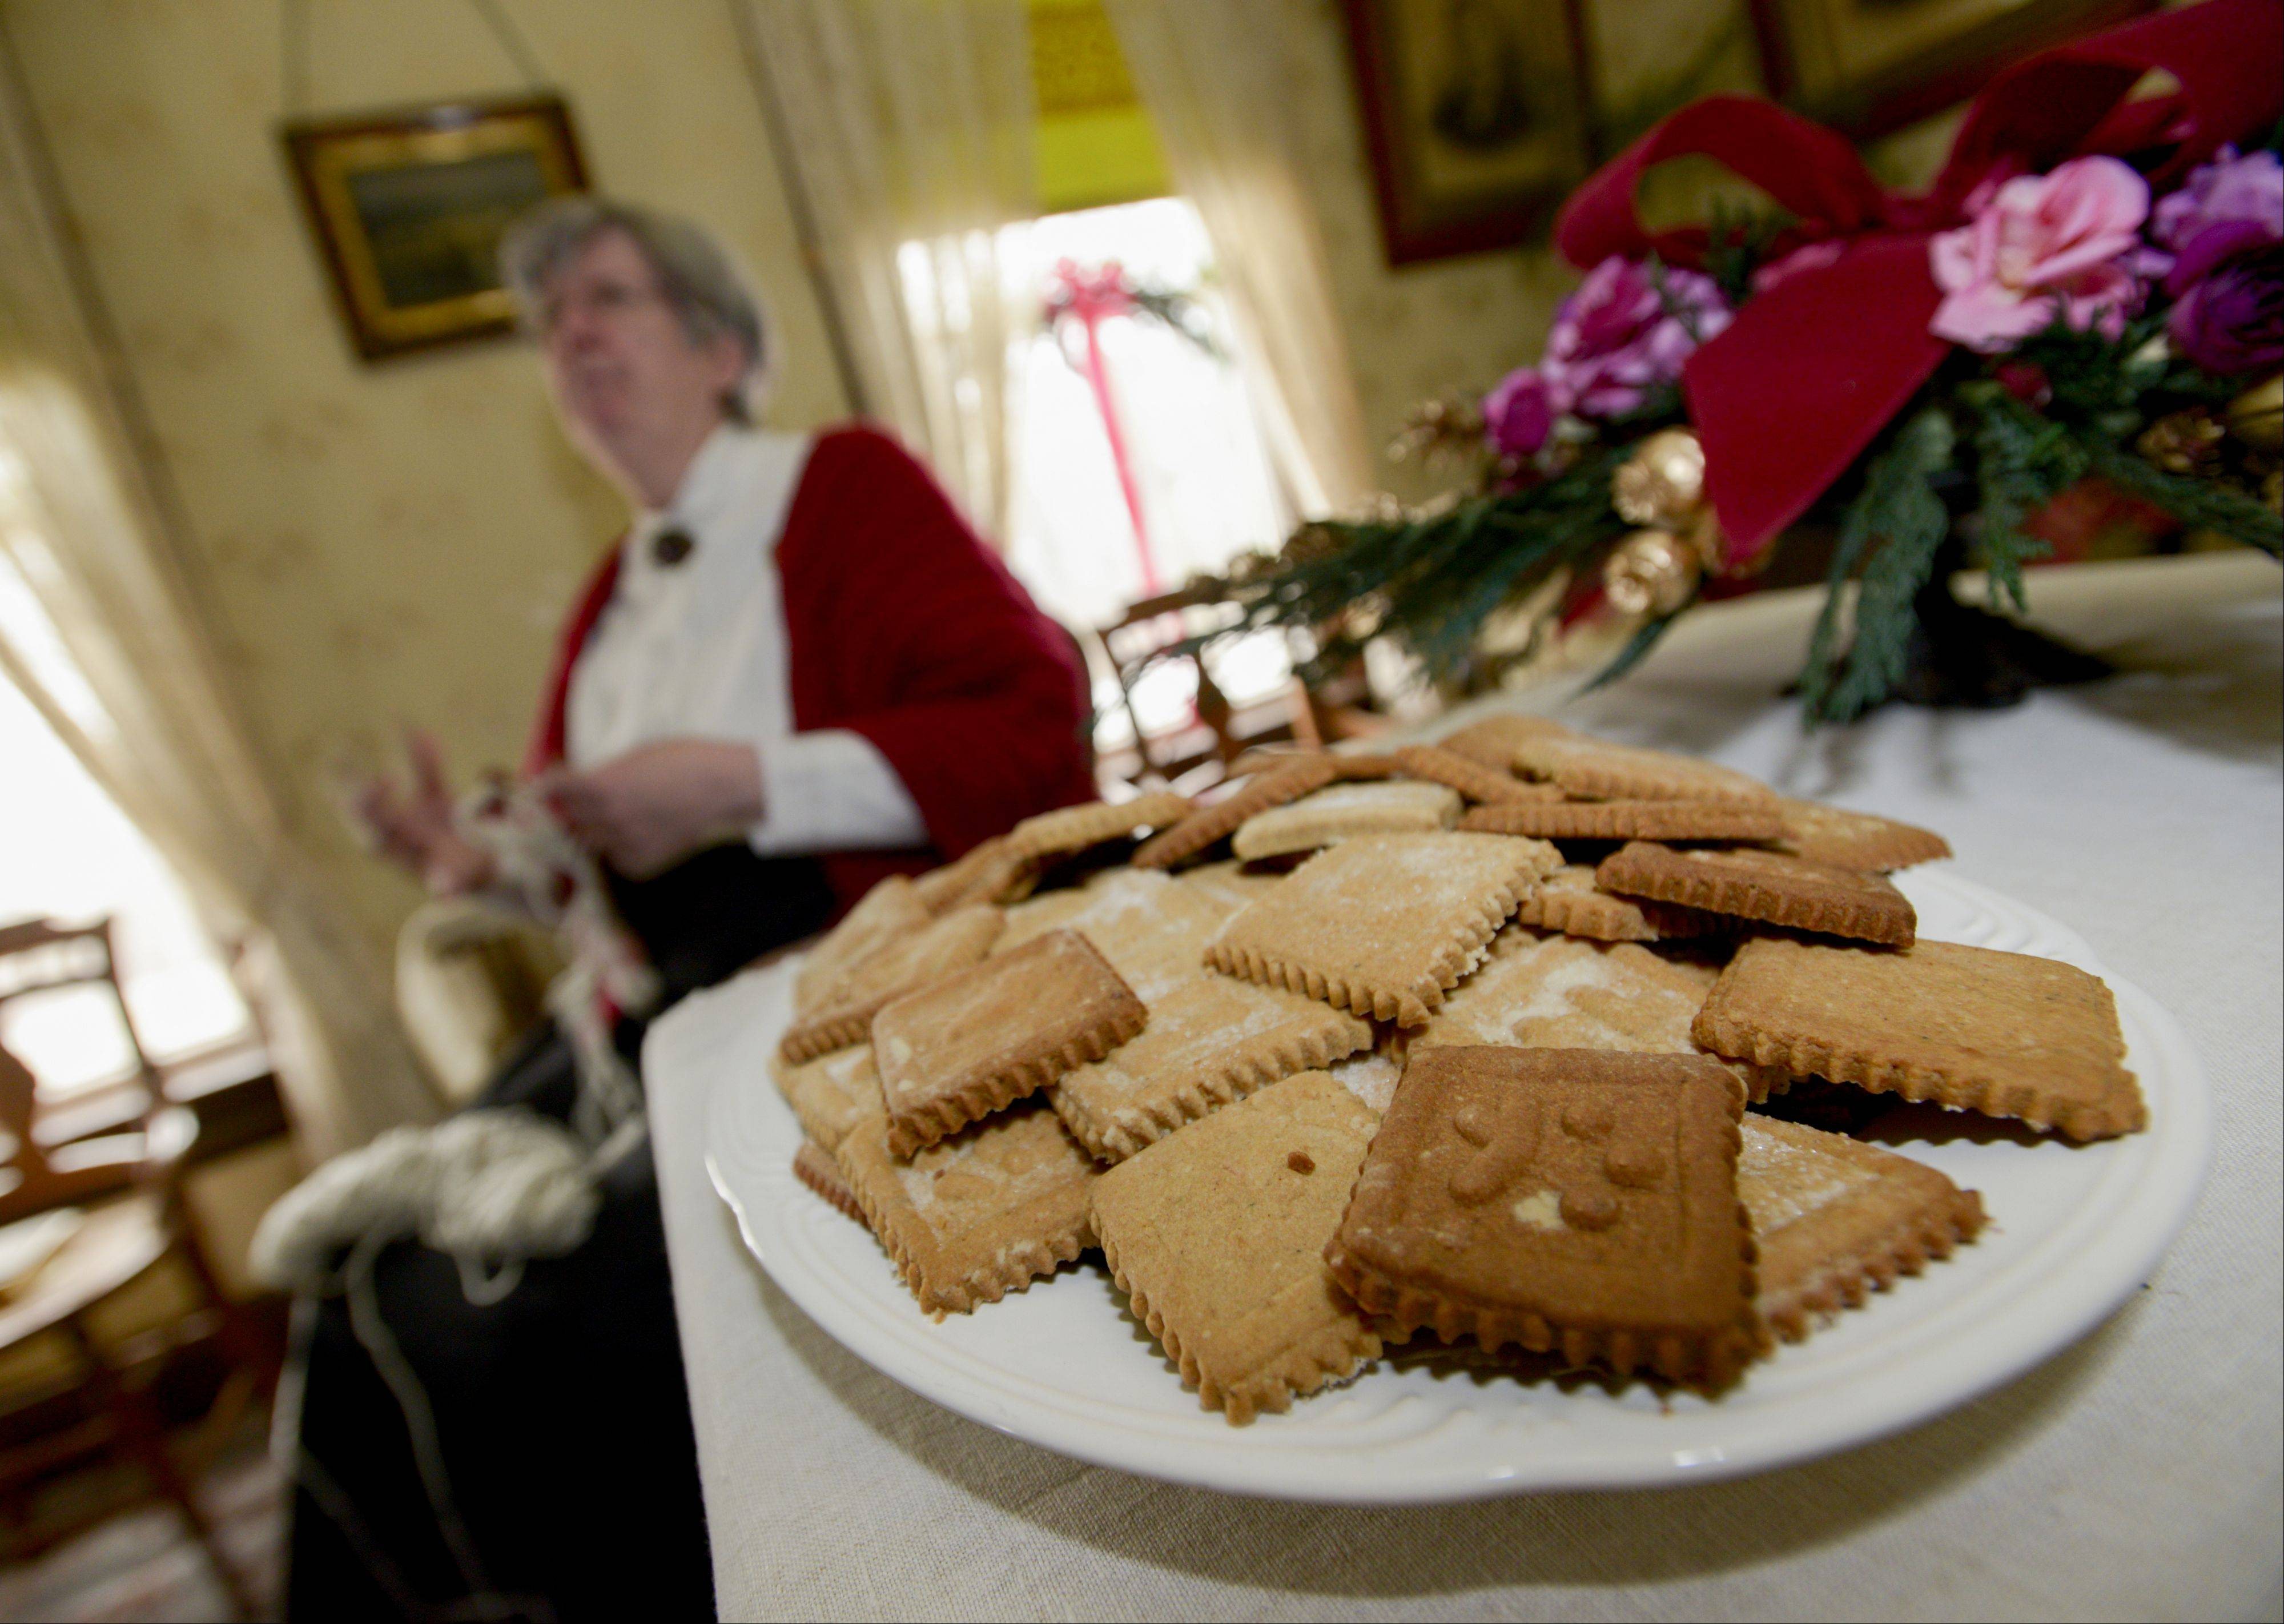 Visitors were treated to traditional Christmas cookies Sunday as part of Kline Creek Farm's representation of an 1890s Christmas. The program, which continues through Dec. 30, gives visitors an idea of how the holidays were celebrated more than 120 years ago.